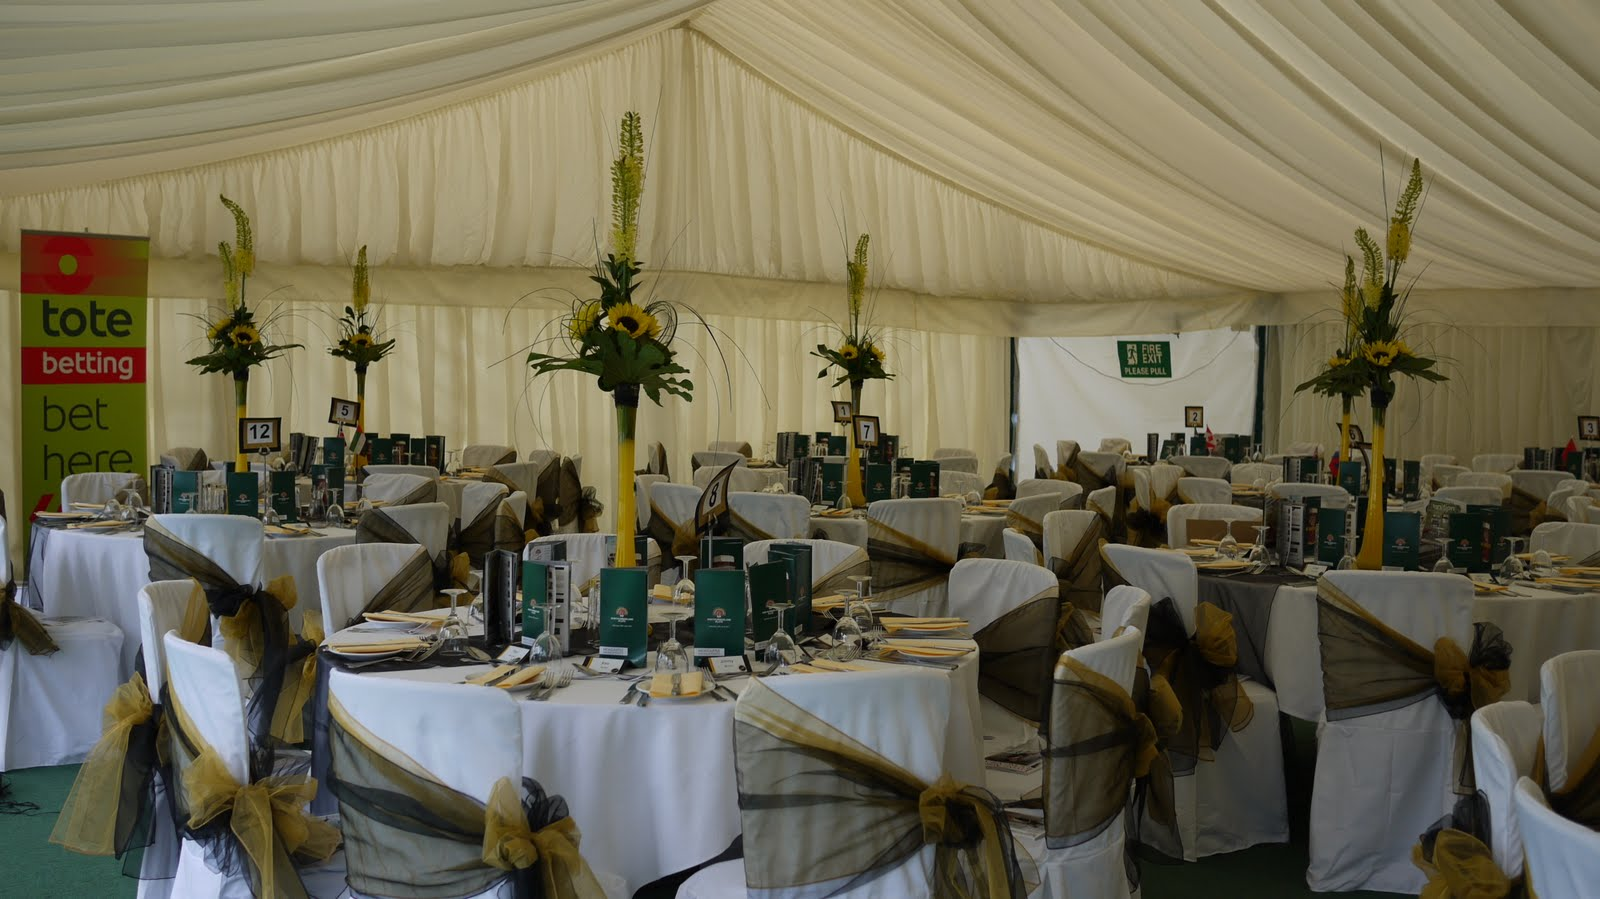 Wedding Chair Covers Newcastle Upon Tyne Miami Dolphins Simply Bows And Racing Splendour